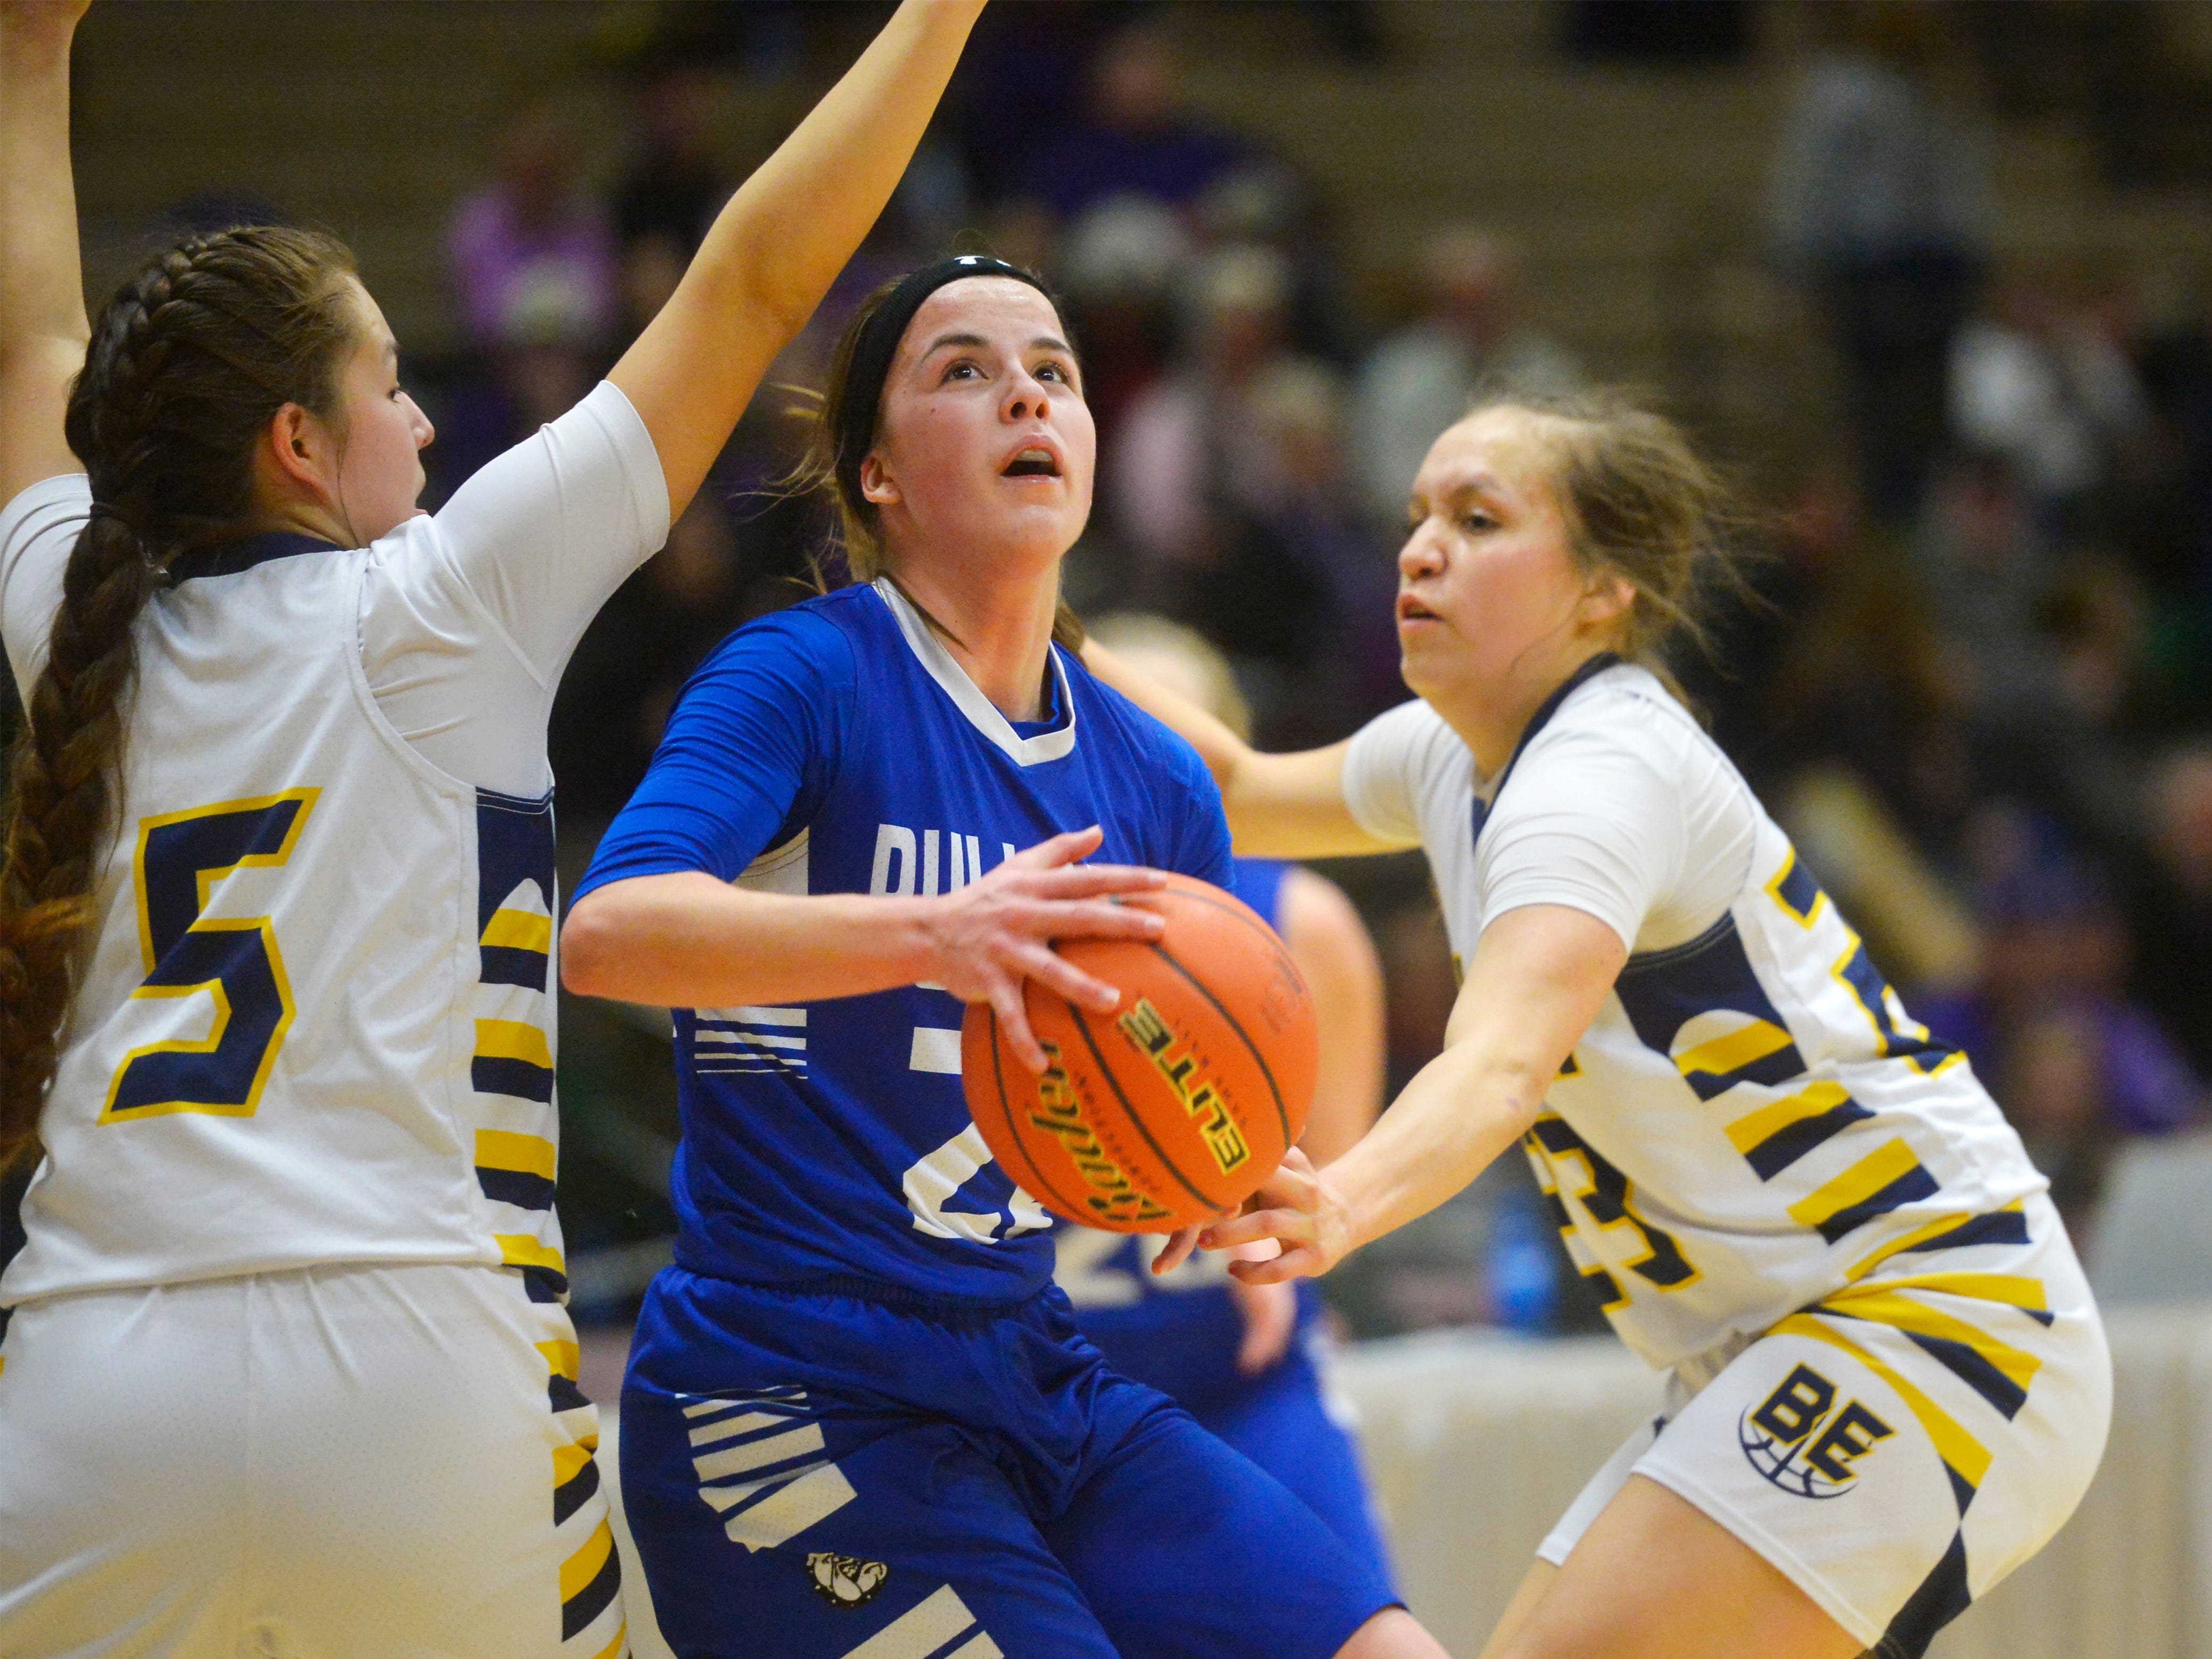 Carter County and Box Elder play in the first round of the Girls State C Basketball Tournament on Thursday in the Four Seasons Arena.